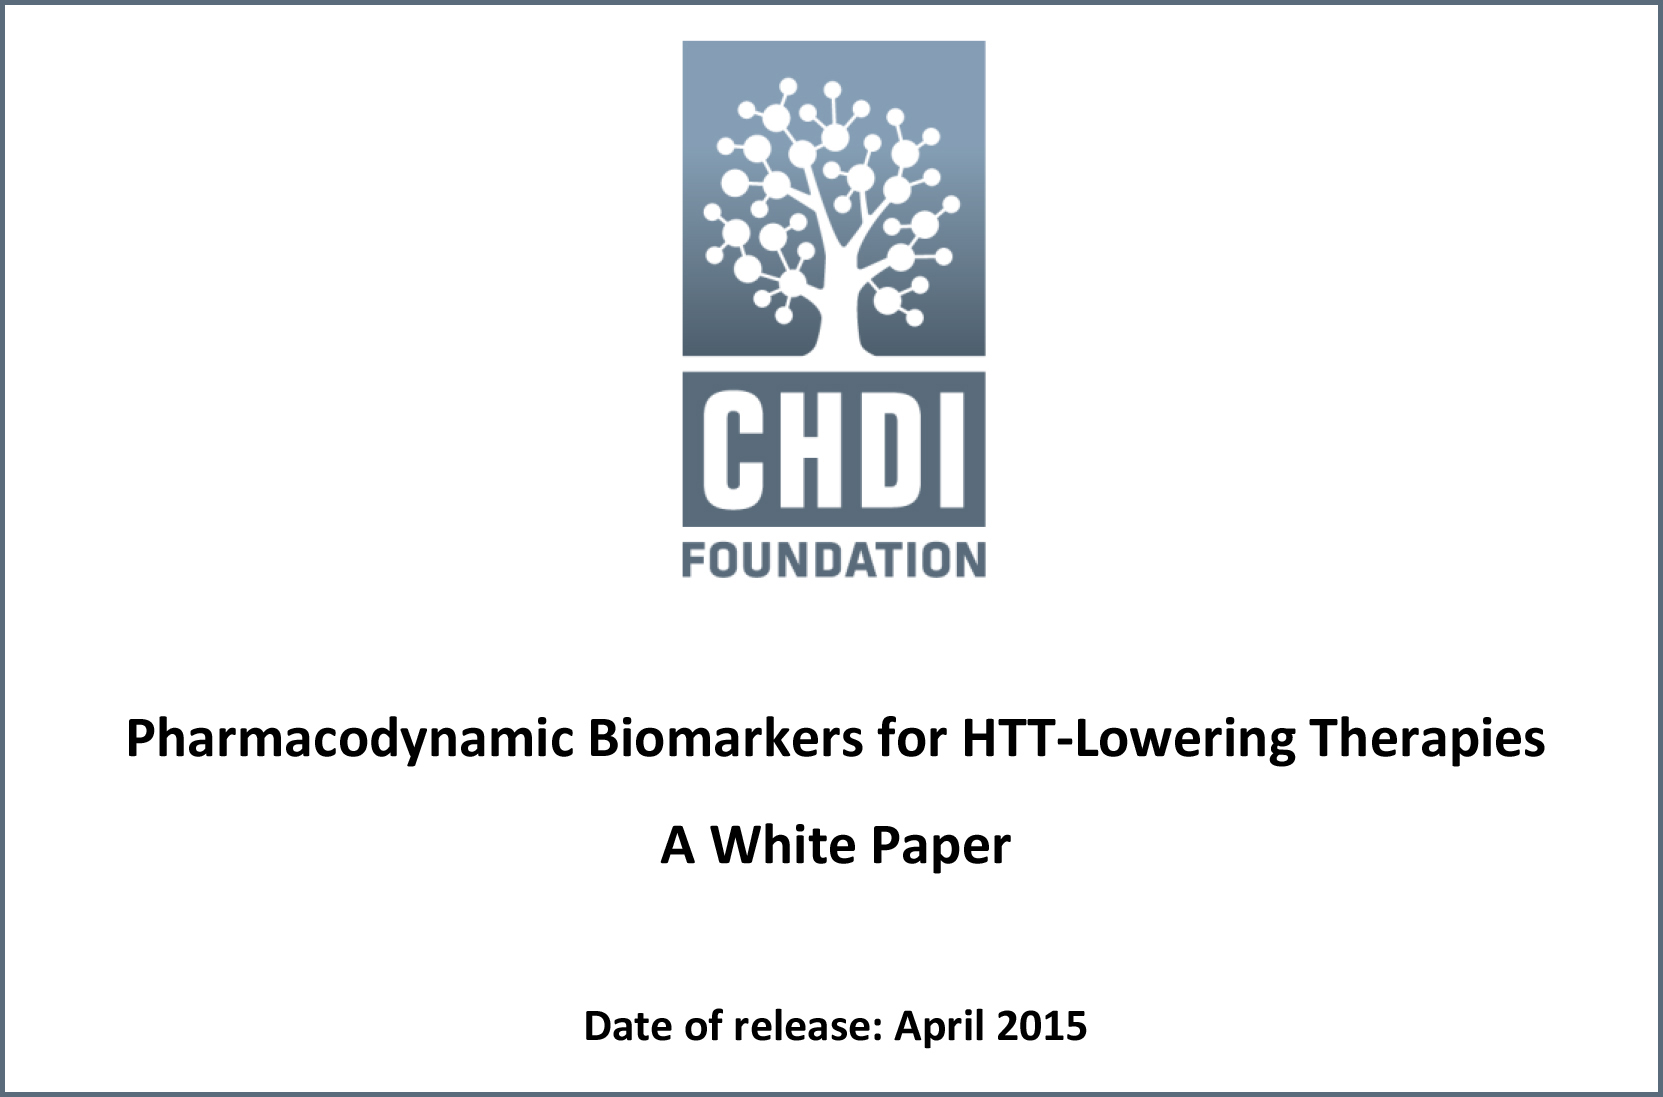 Biomarkers for HTT-Lowering Therapies